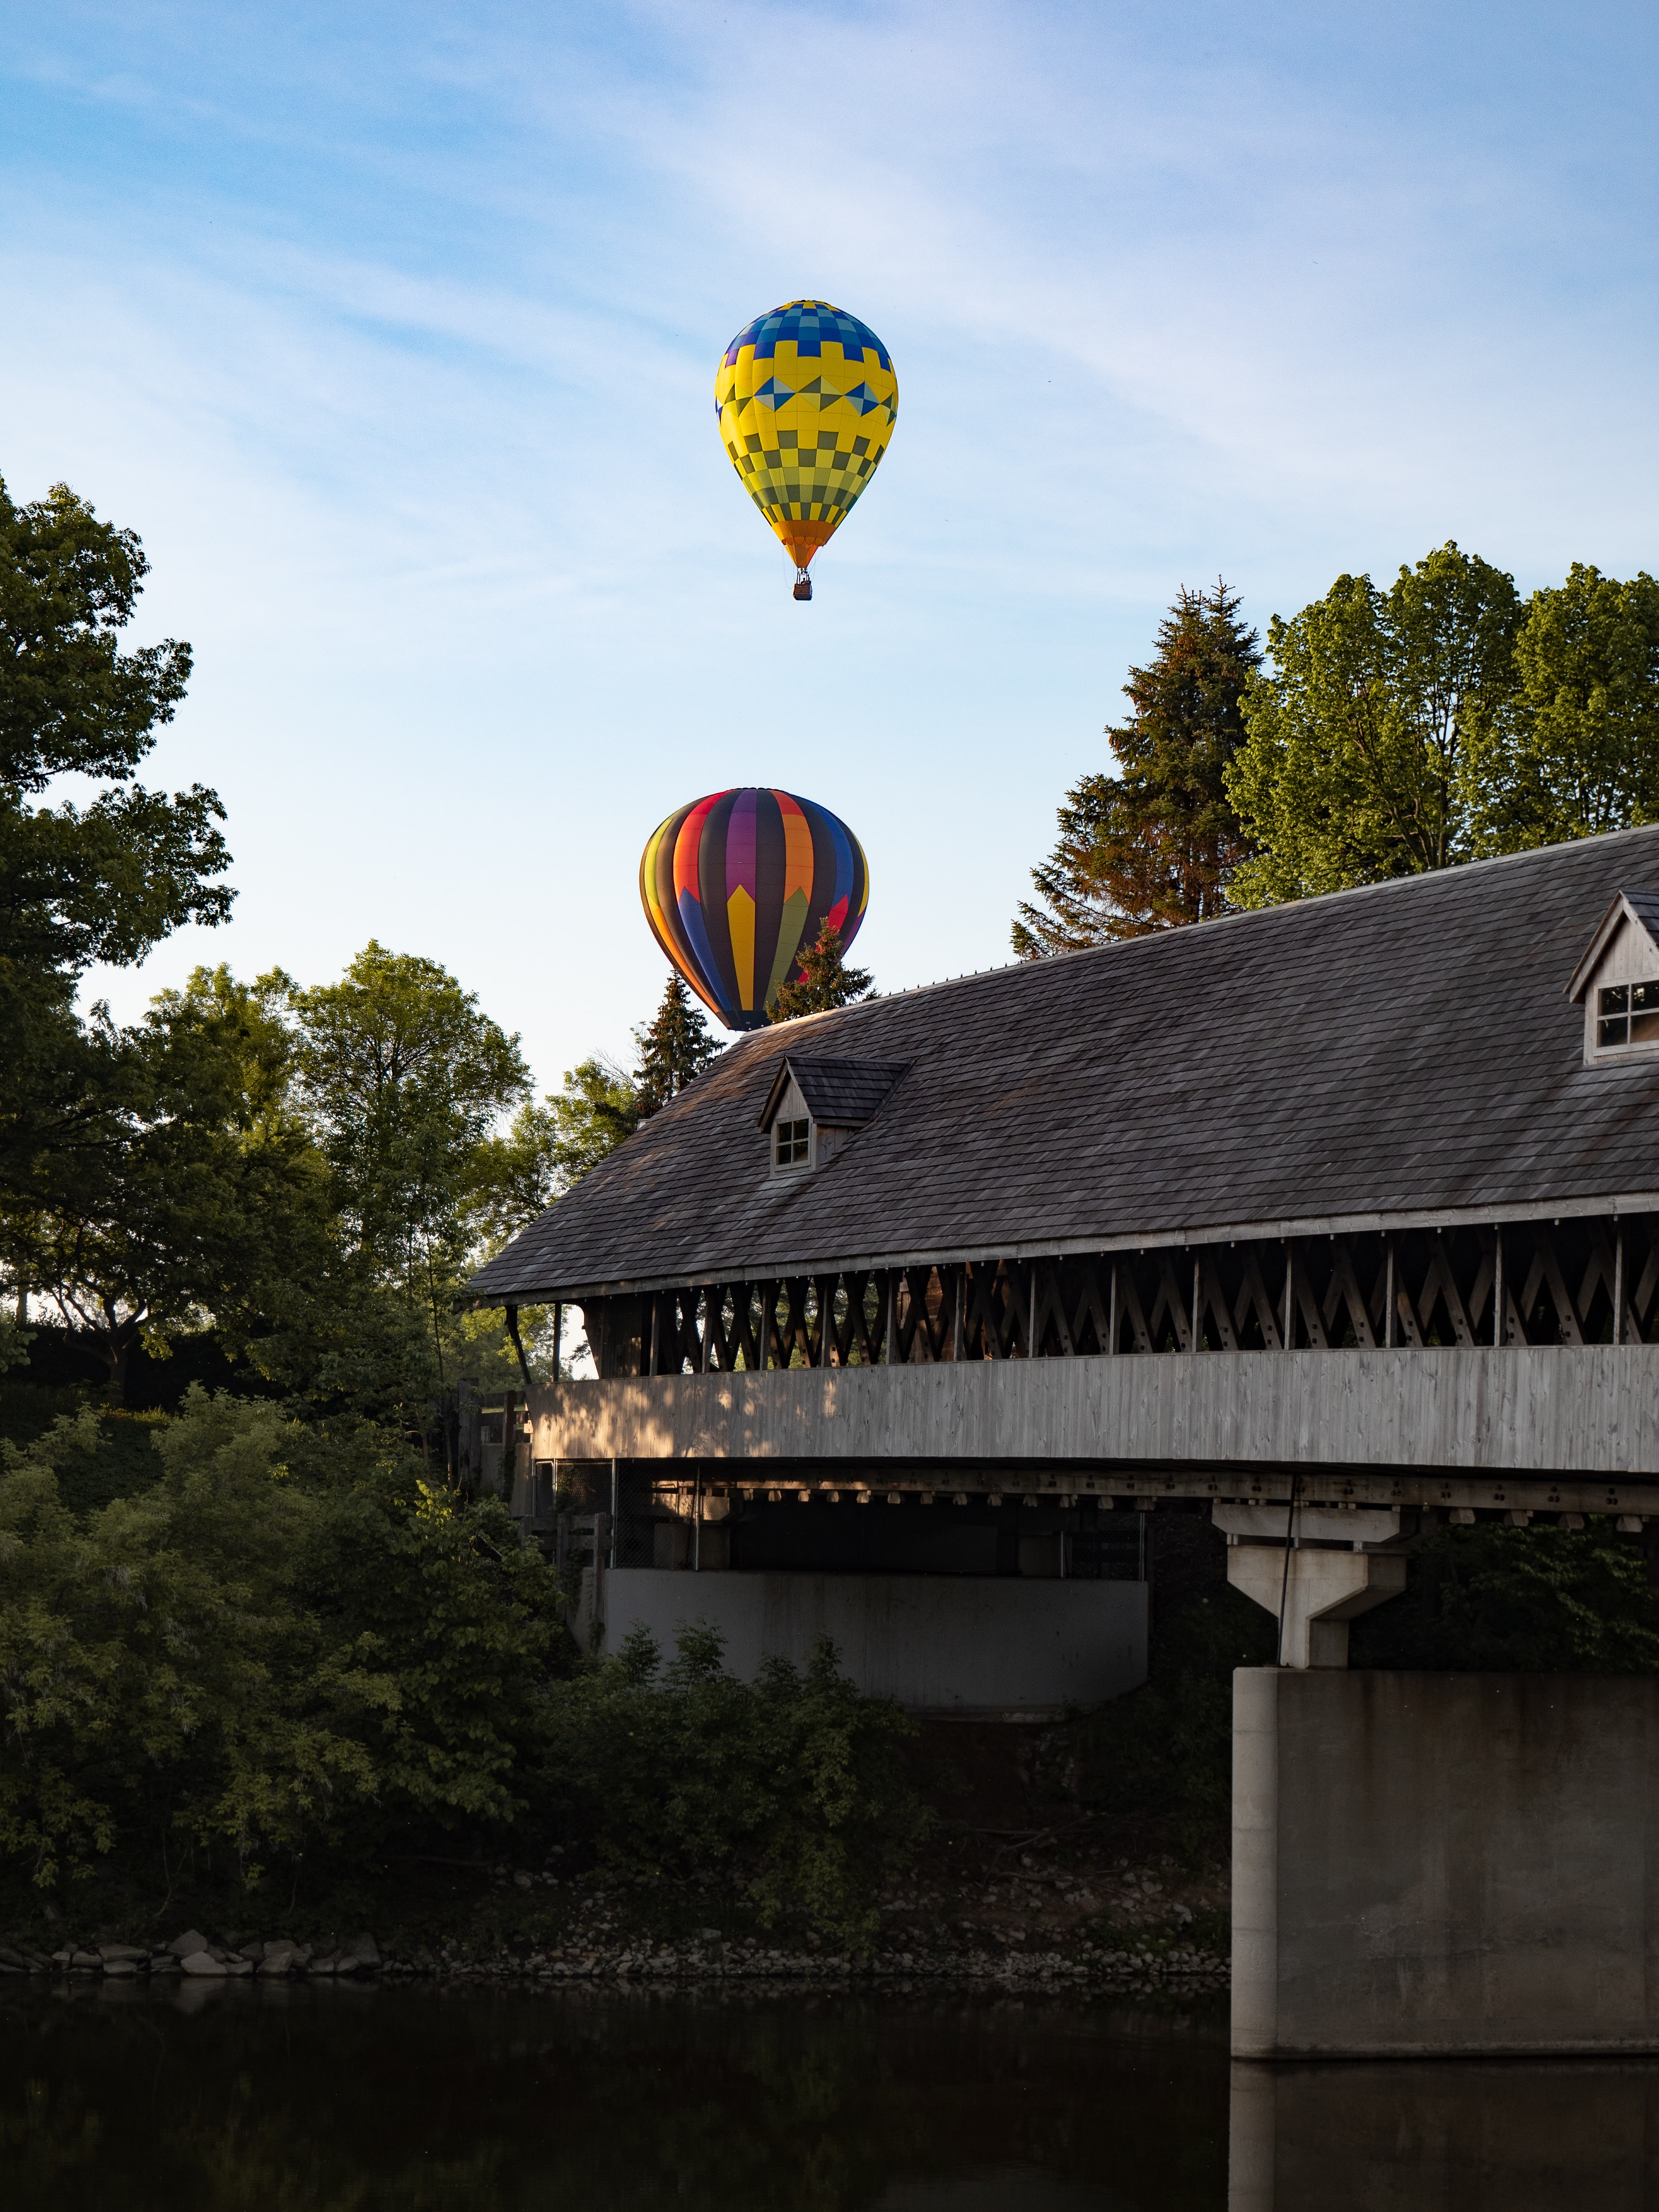 two hot air balloons during daytime